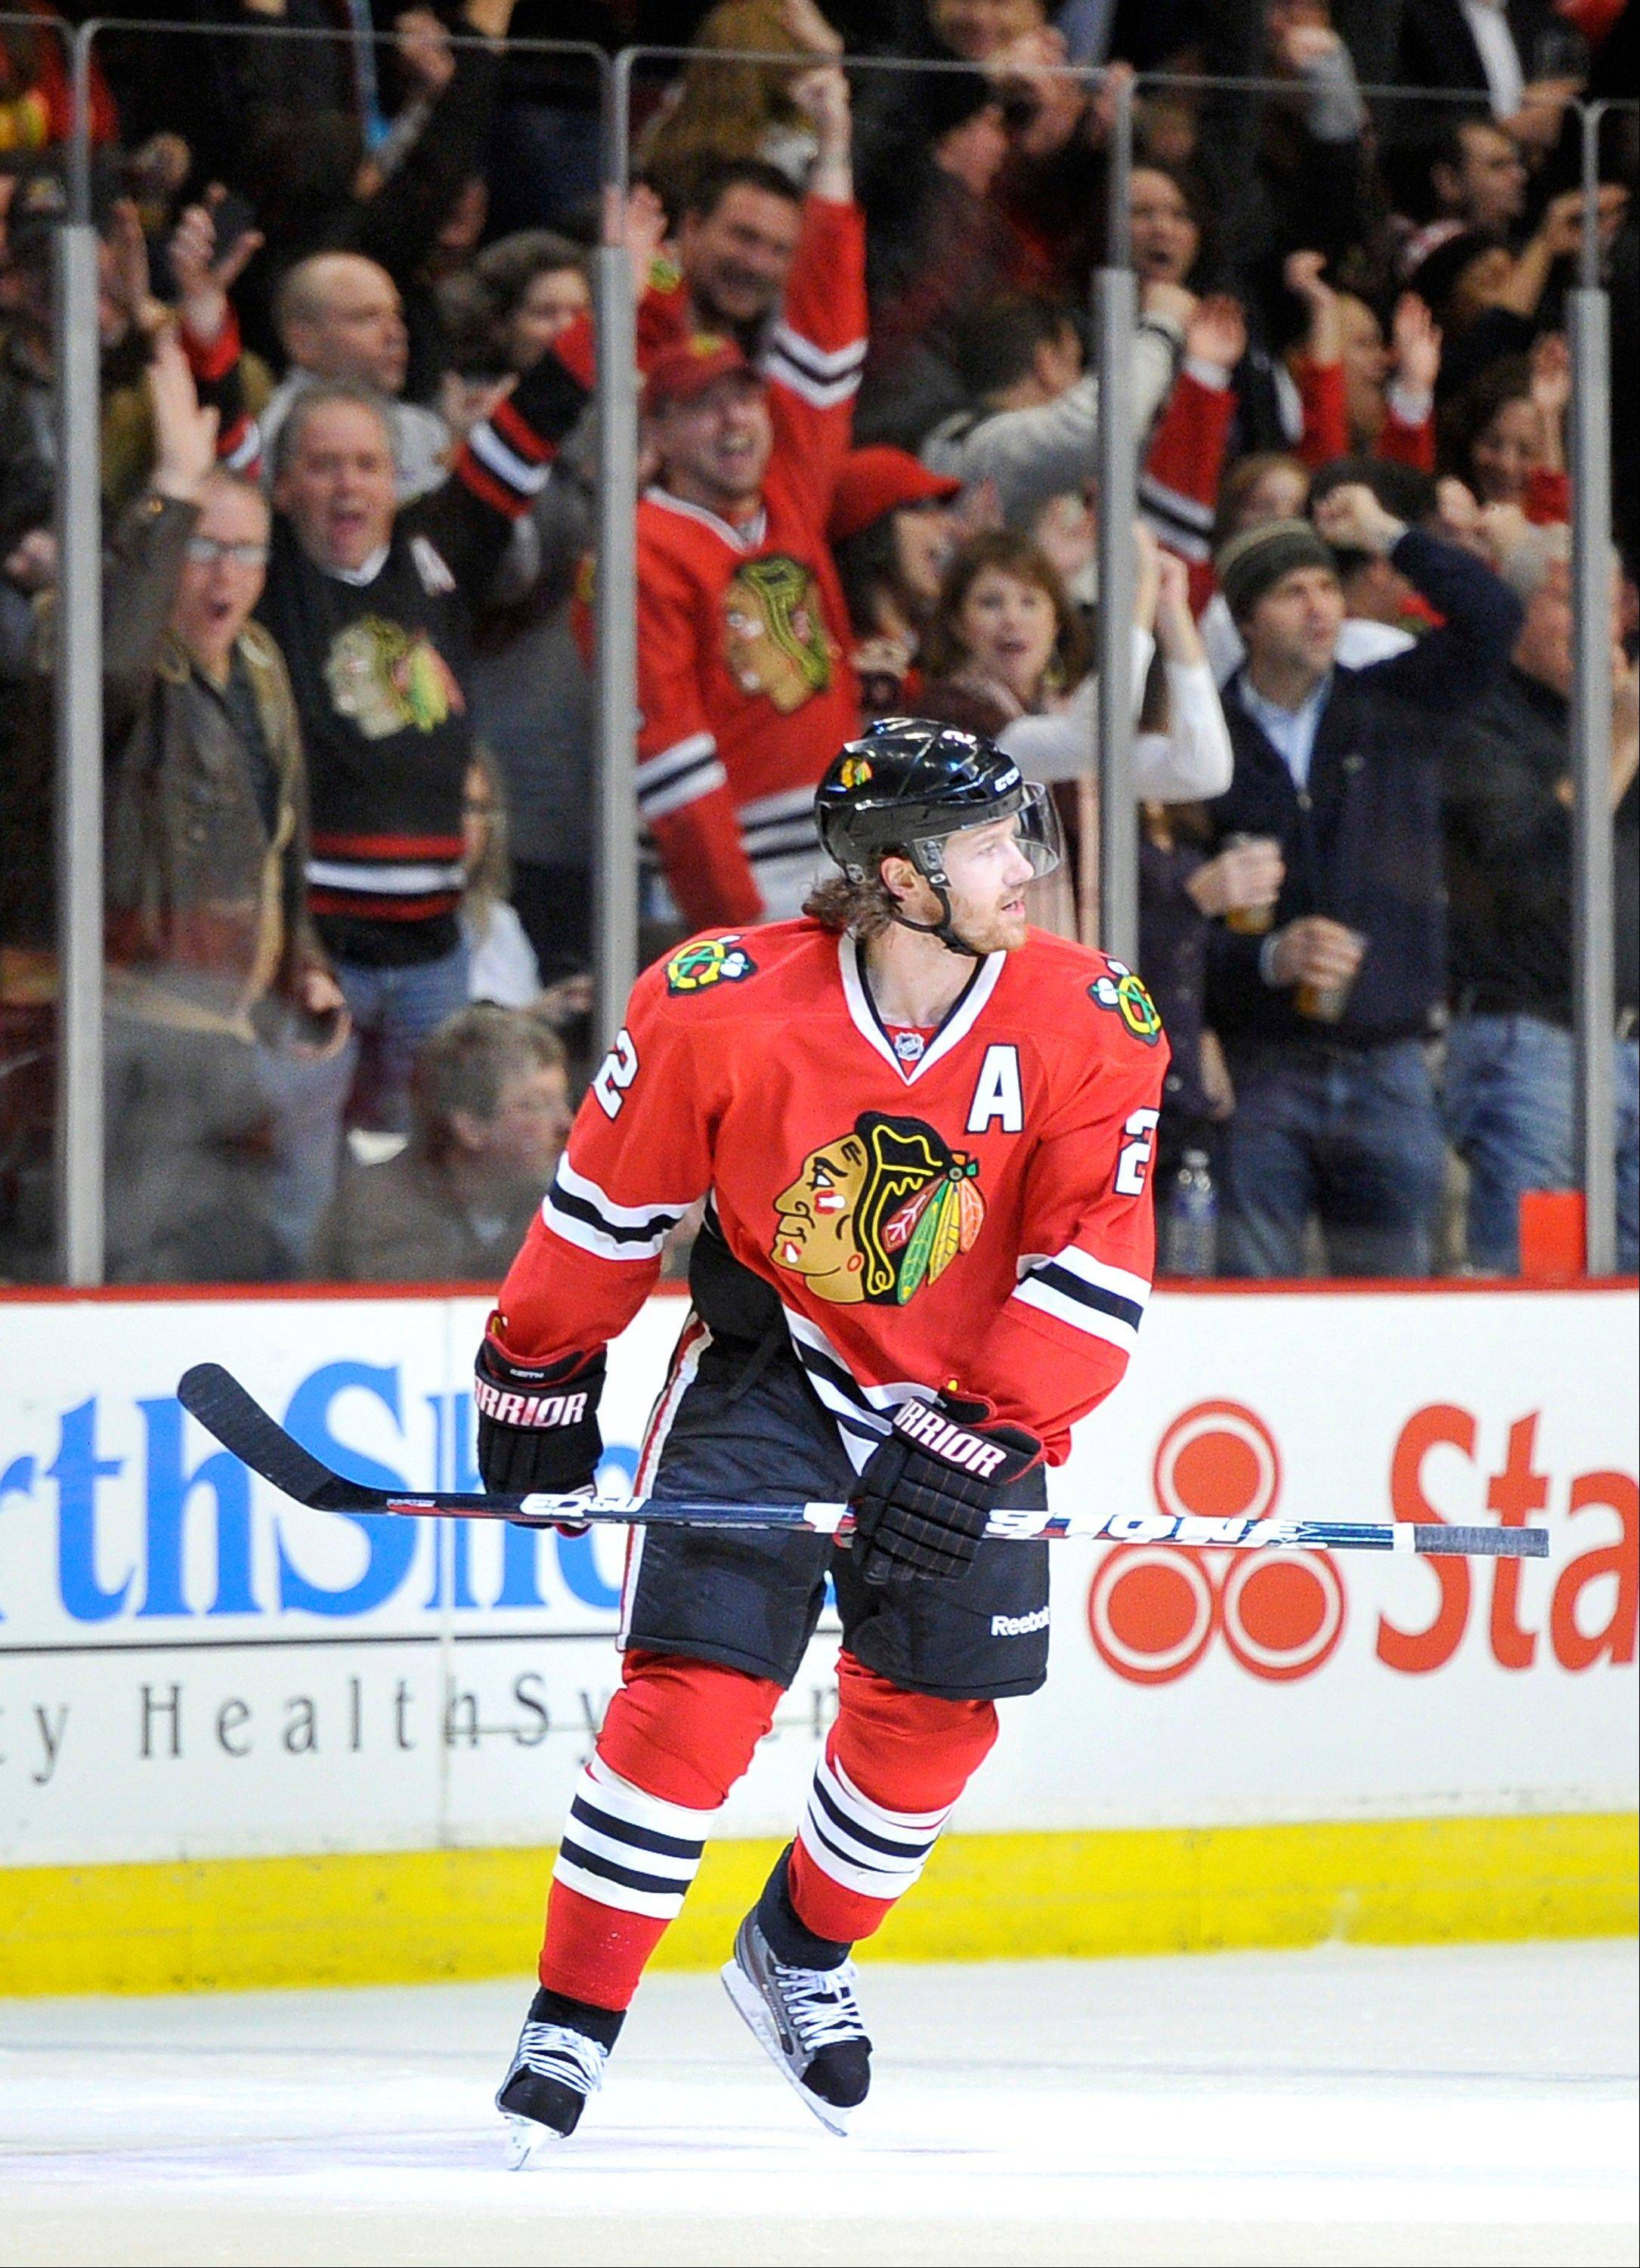 As a new father, defenseman Duncan Keith will likely get a warm reception at the United Center from Blackhawks fans when the team takes the ice on Thursday for Game 5 against Minnesota.